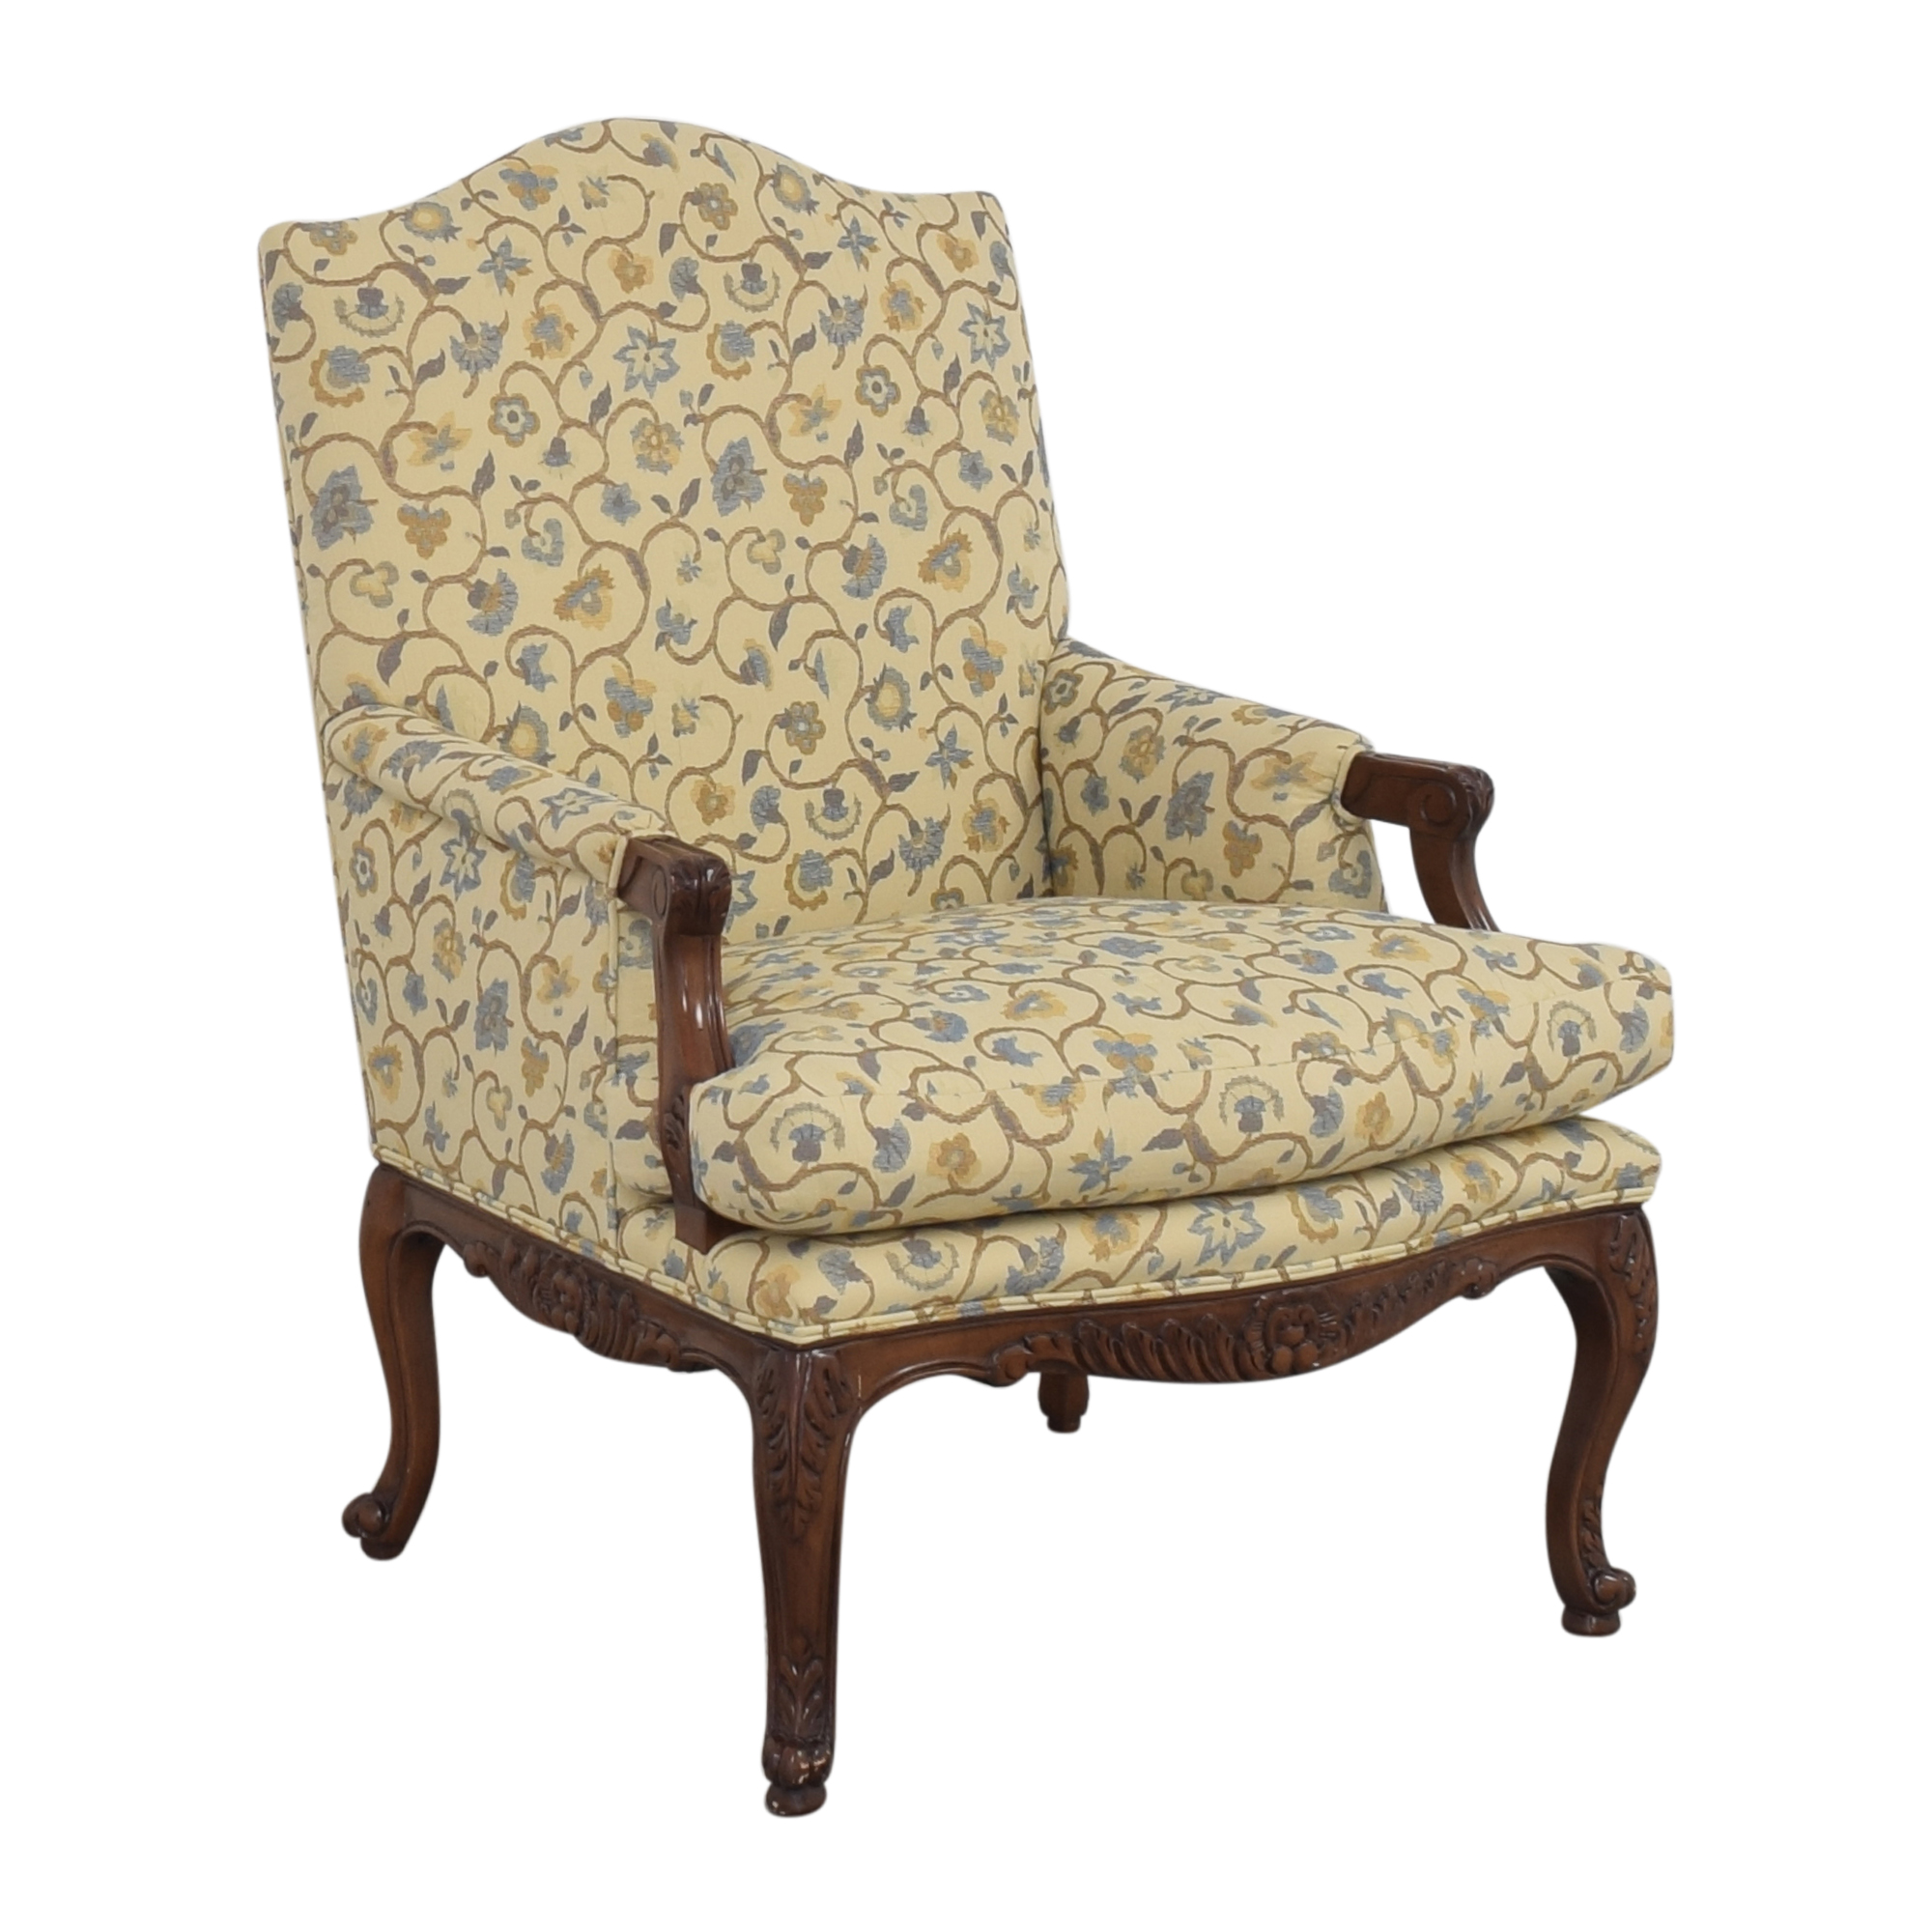 Kravet Kravet Upholstered Chair dimensions